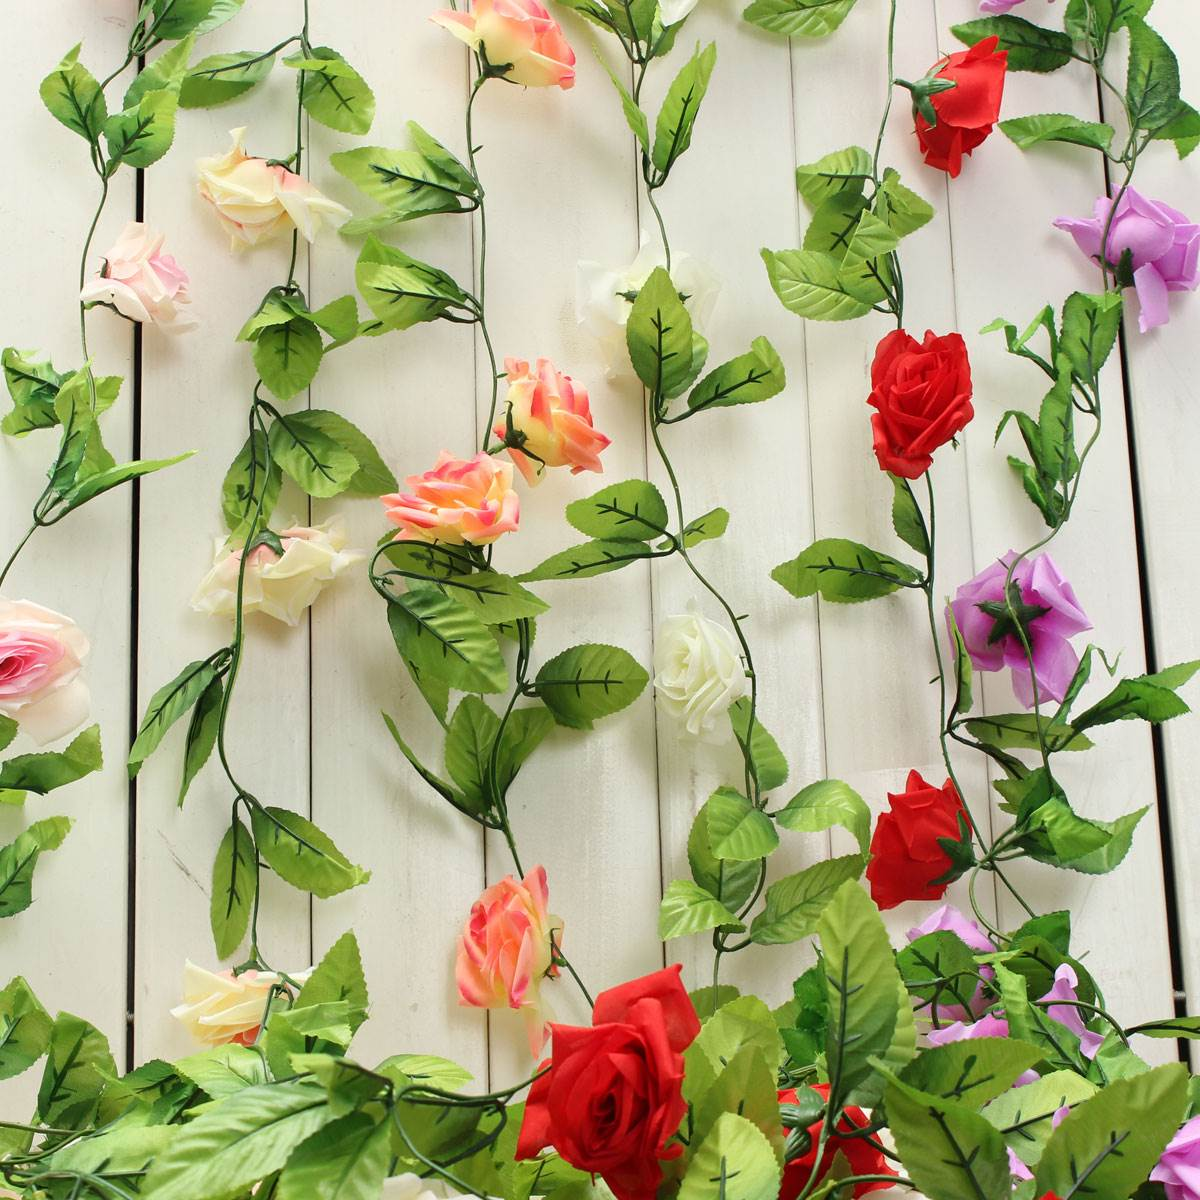 plastic silk fabric rose flower 24m ivy vine hanging garland wedding home decor festive party supplies spot arrangement - Silk Arrangements For Home Decor 2